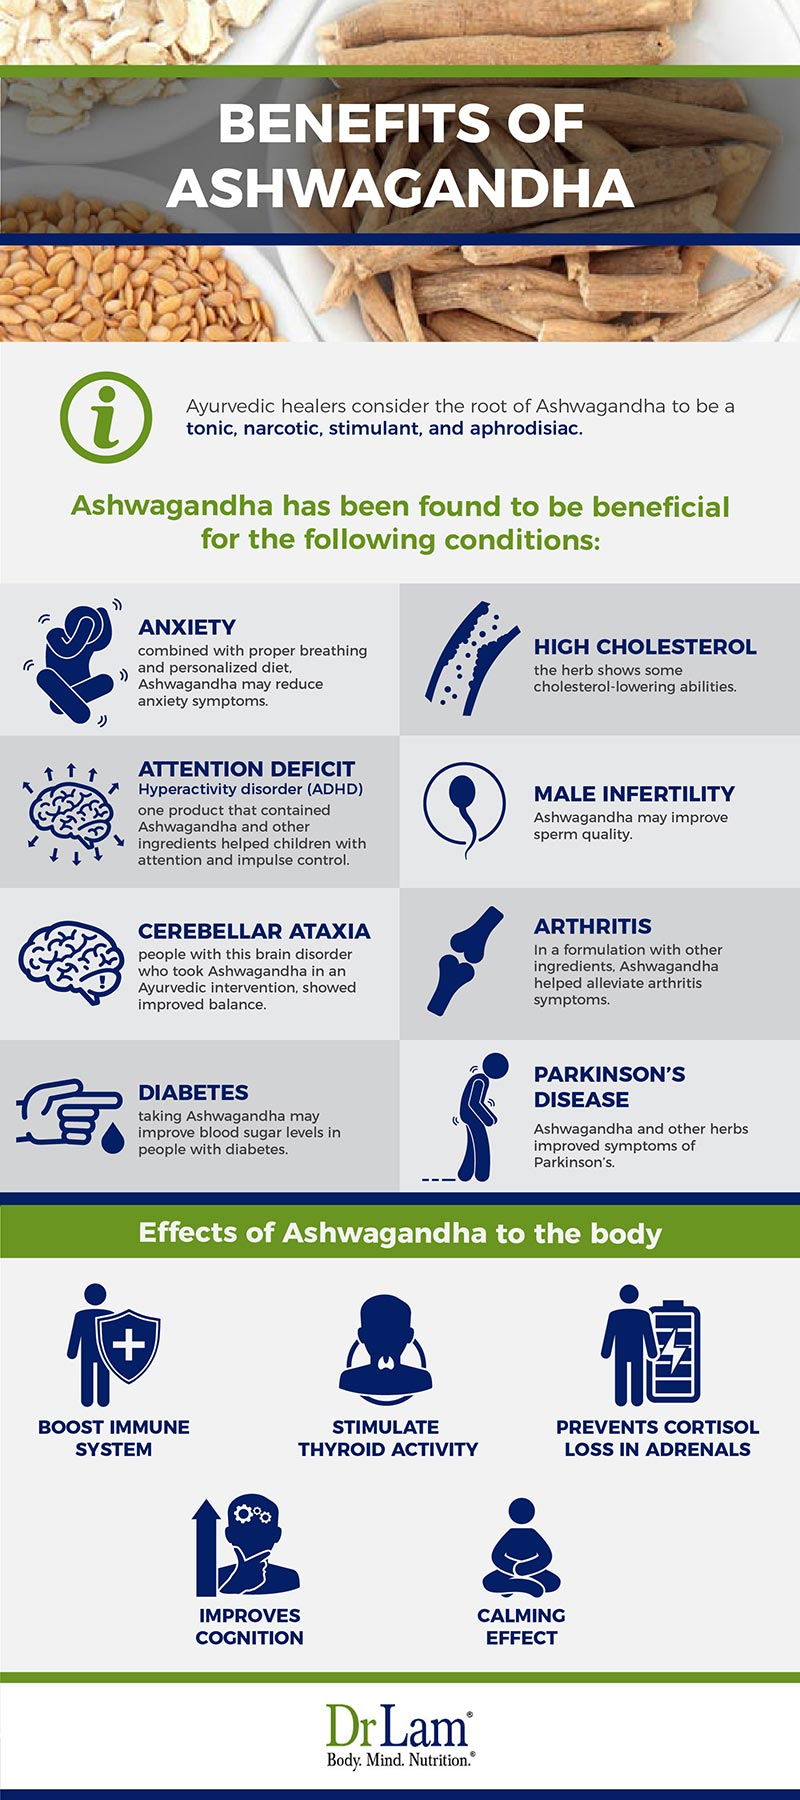 Check out this easy to understand infographic about the benefits of Ashwagandha